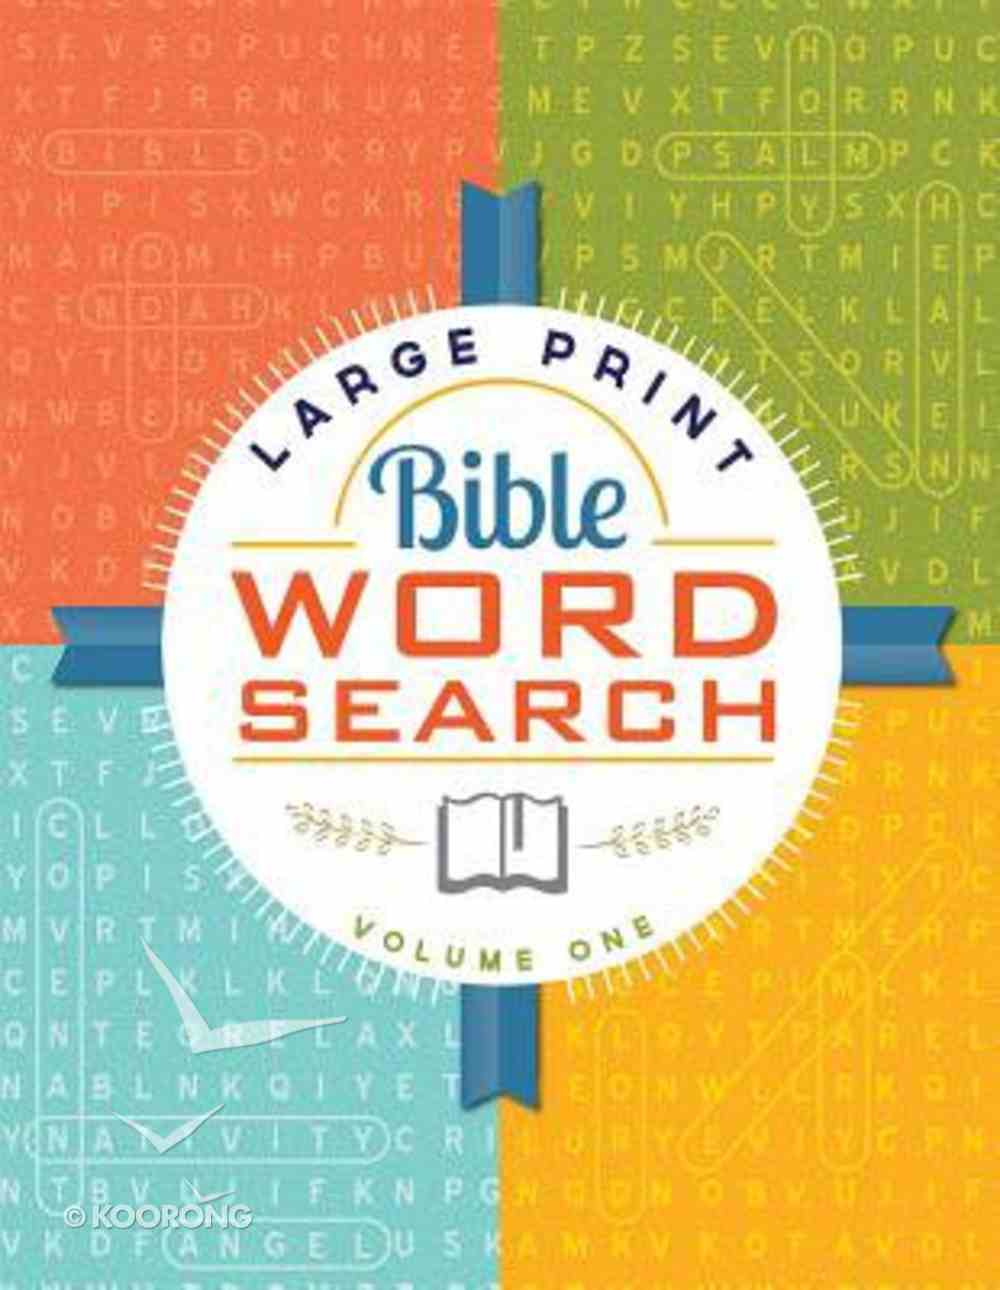 Bible Word Search Volume 1 (Large Print) Paperback